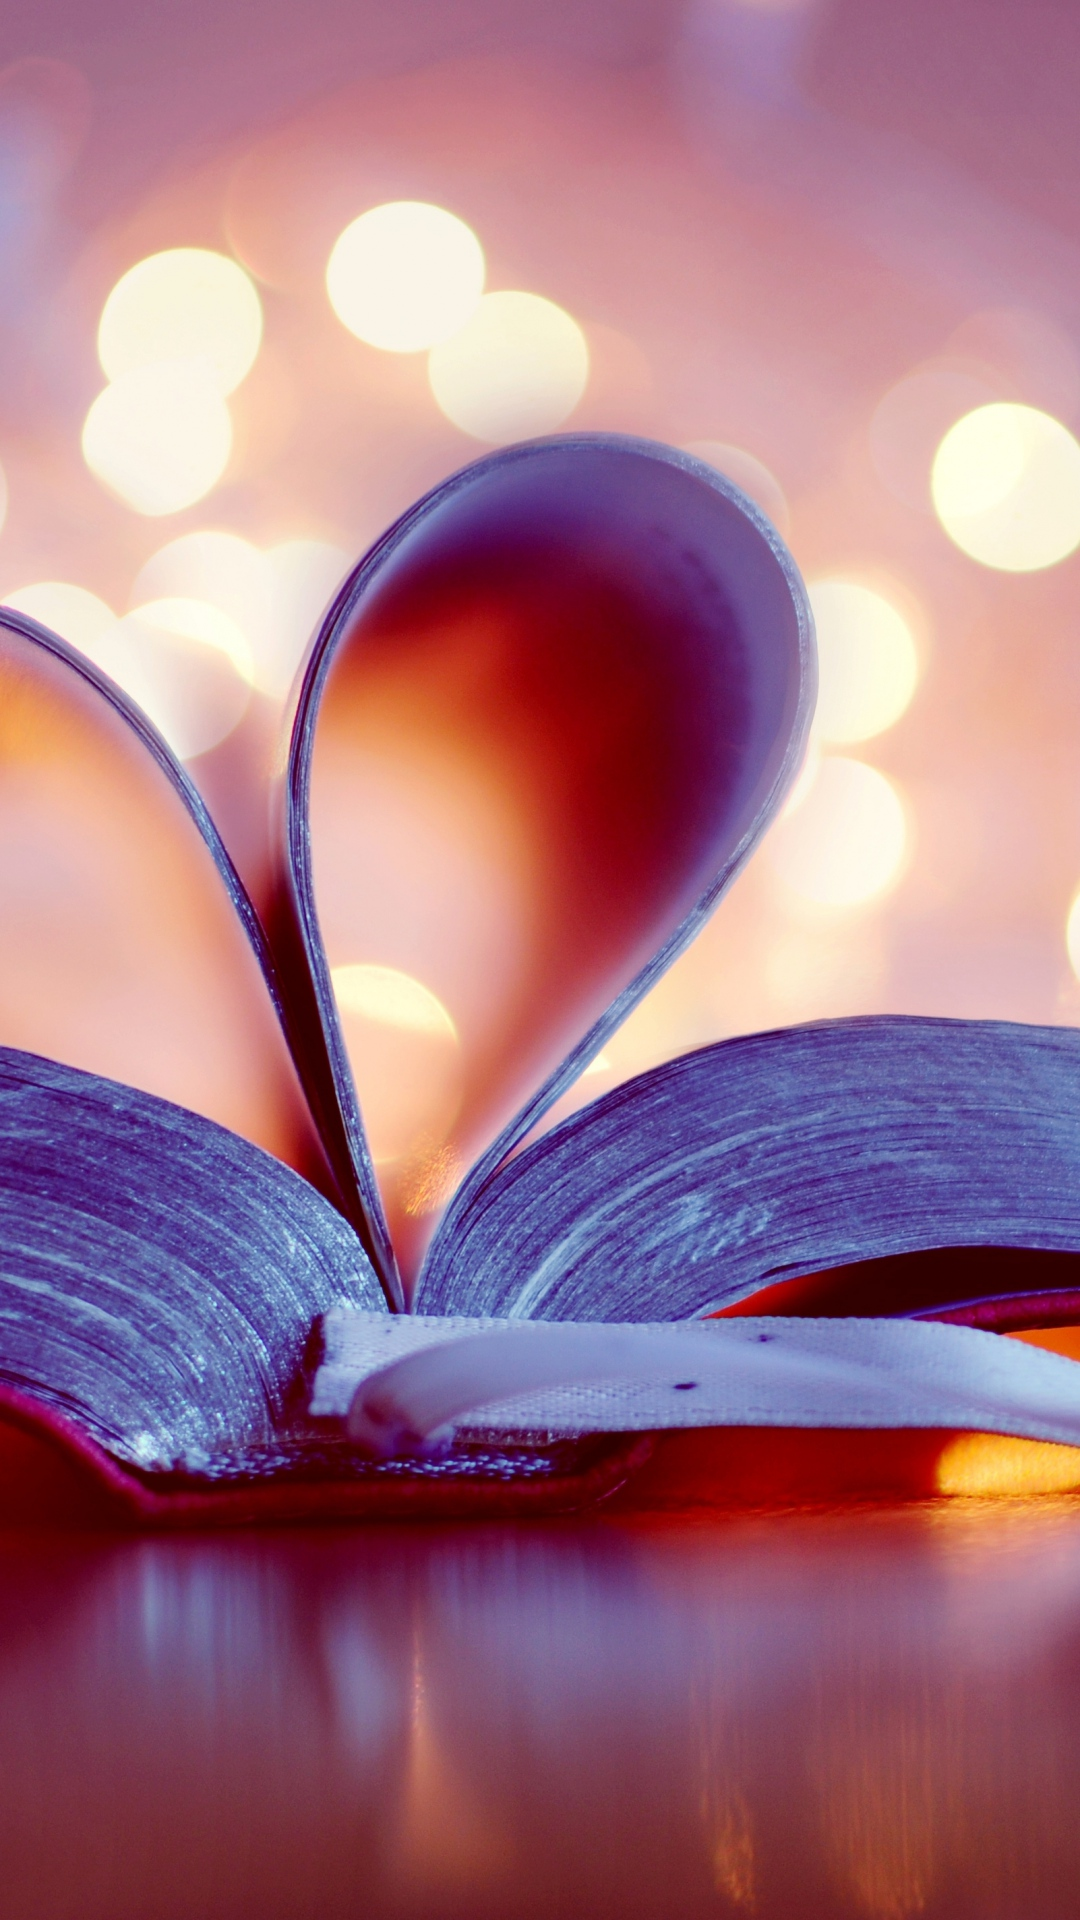 Book Love Heart Bokeh Android wallpaper